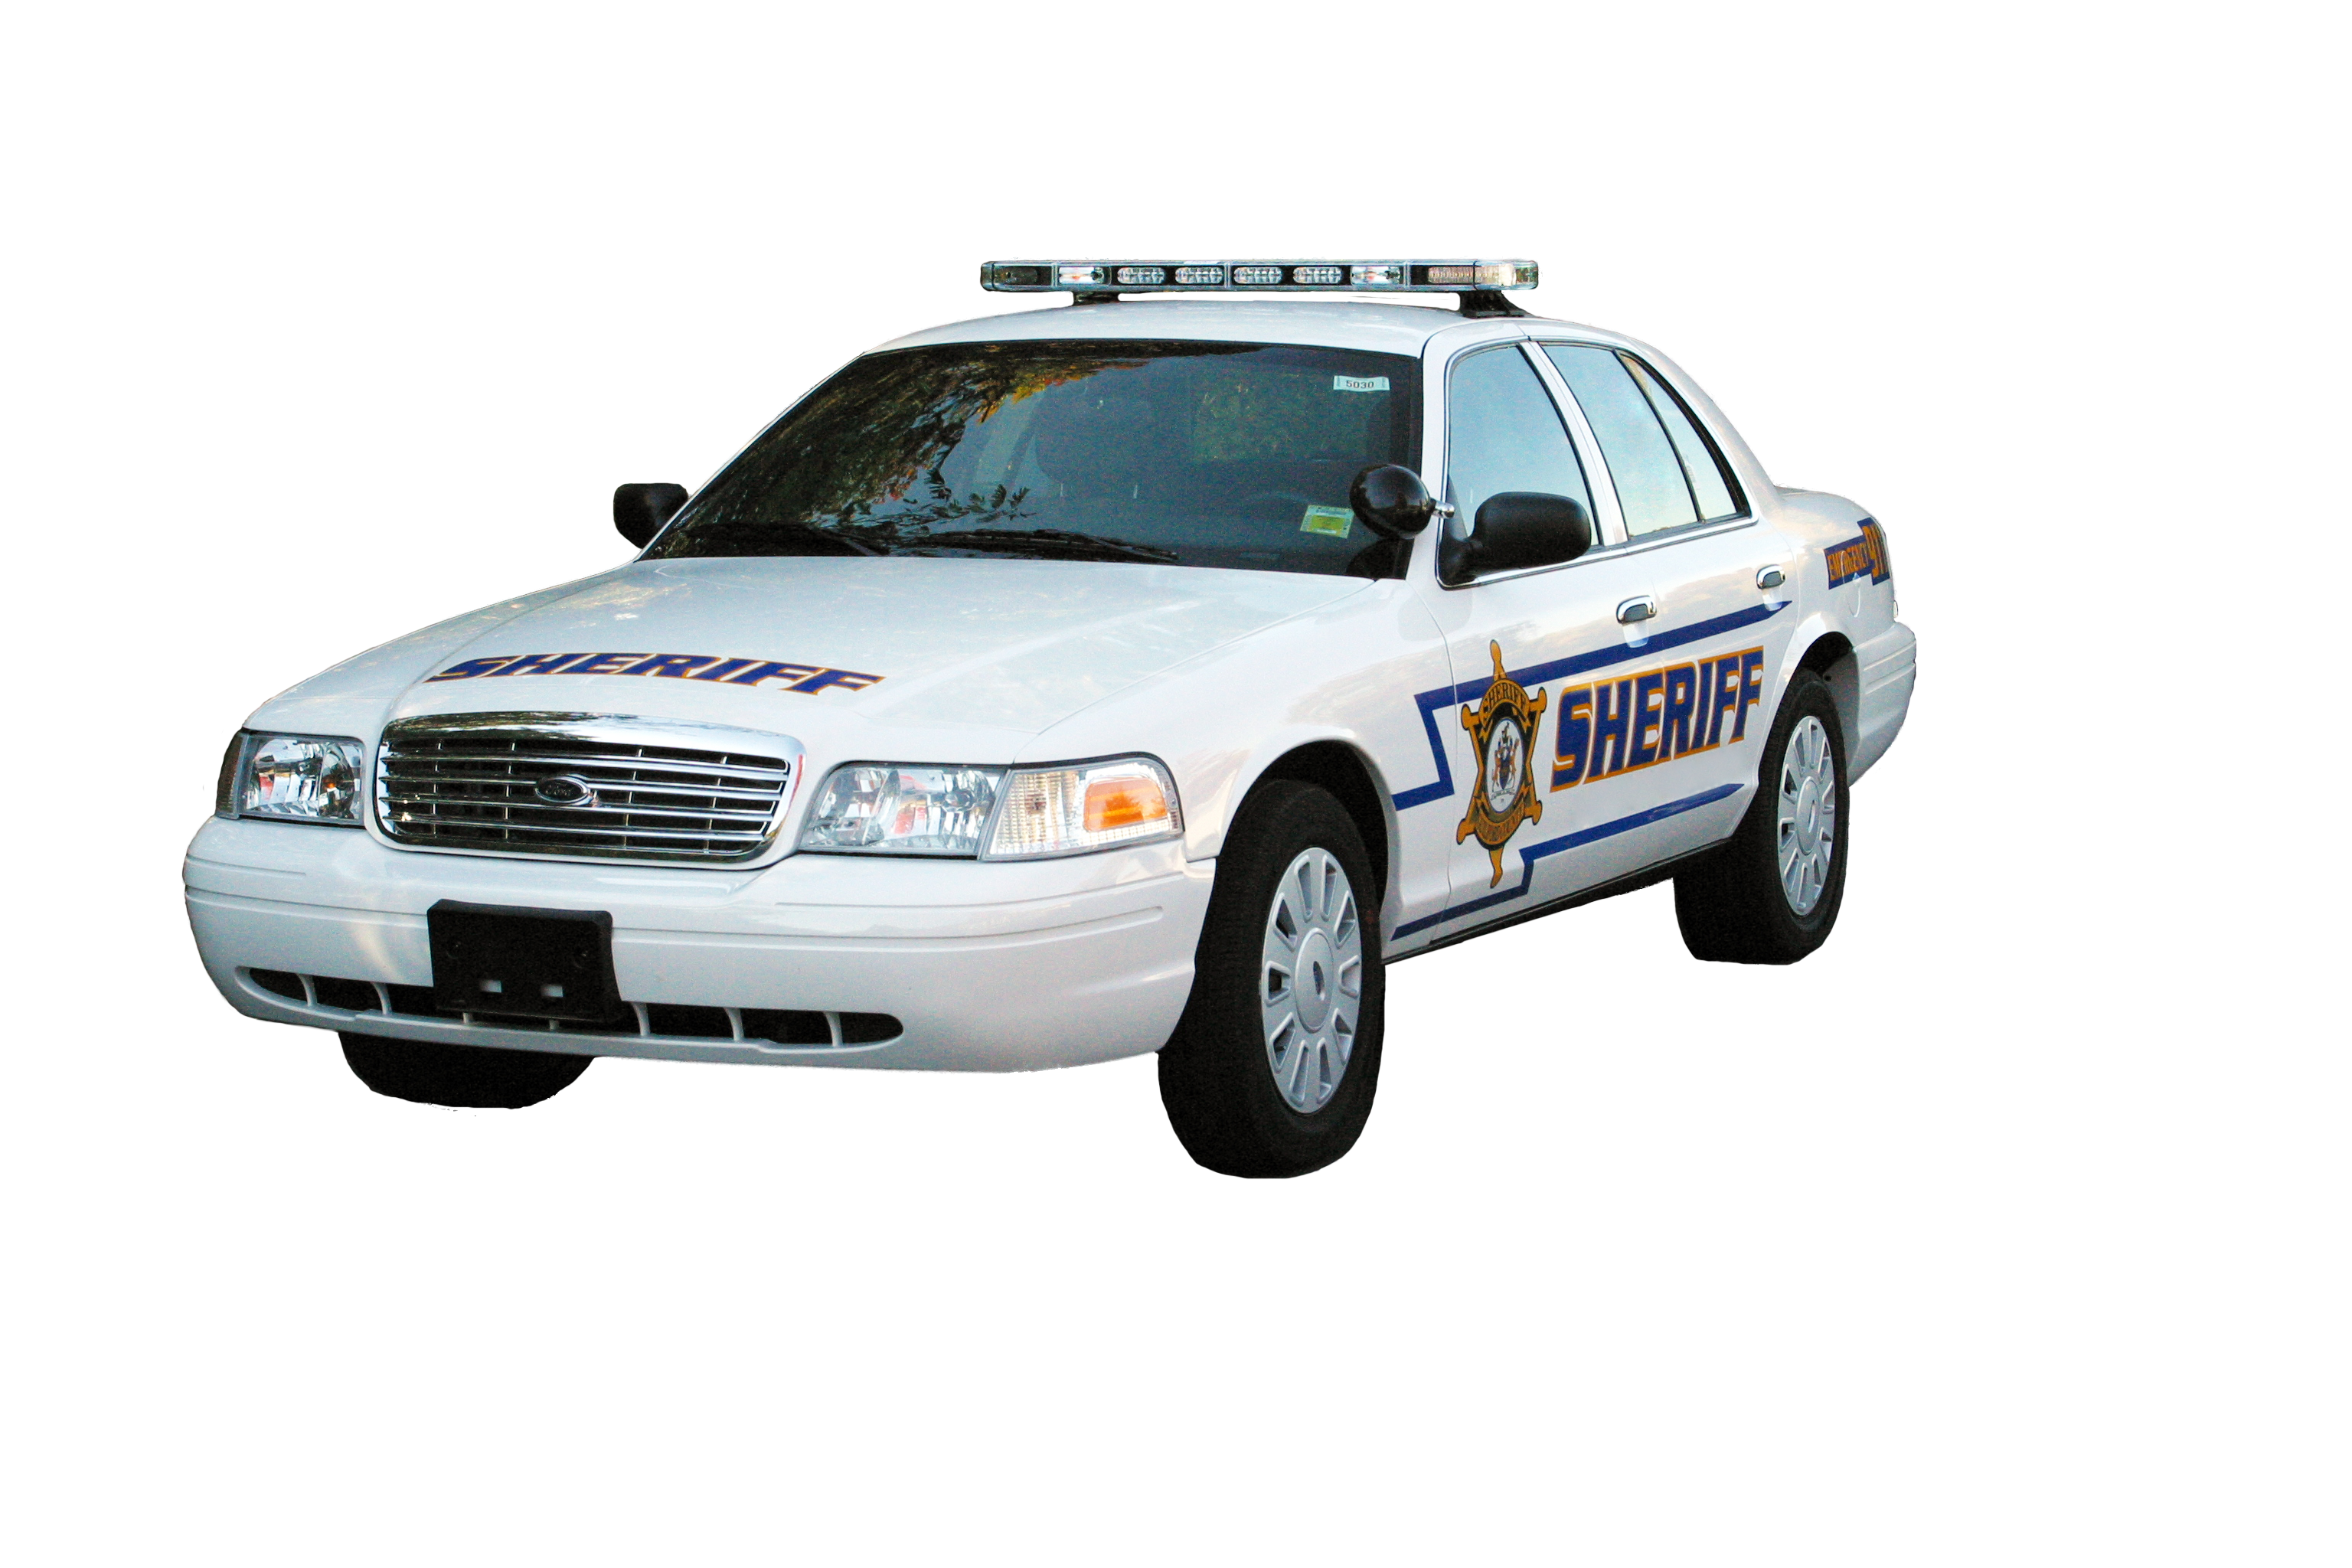 Crown victoria clipart png transparent download Ford Crown Victoria Police Interceptor Police car Vehicle - Police ... png transparent download